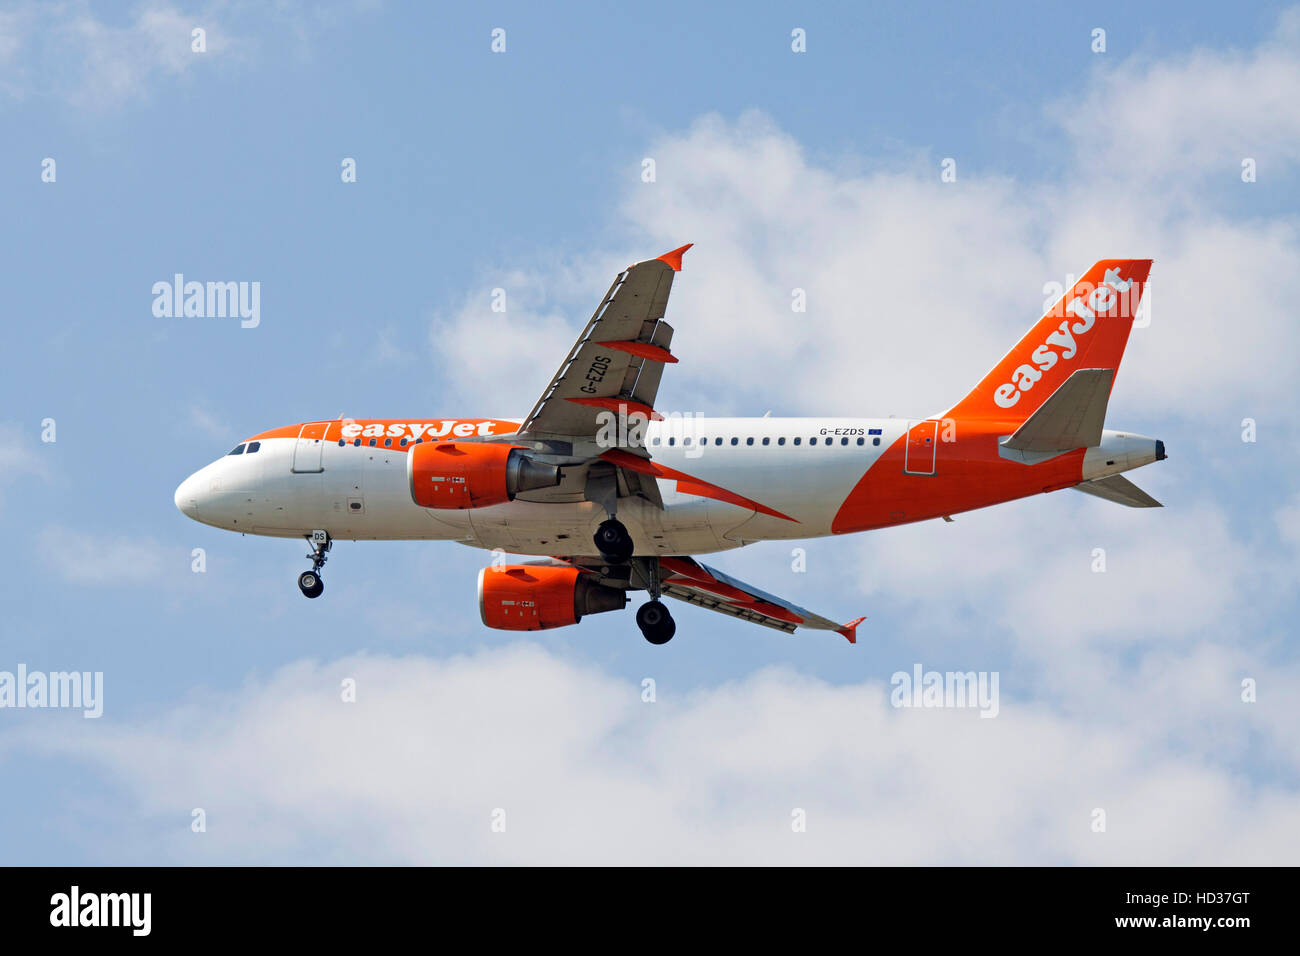 AMSTERDAM, THE NETHERLANDS - SEPTEMBER 25, 2016: Contrasting picture of an Airbus A319-111 from easyJet that wil - Stock Image